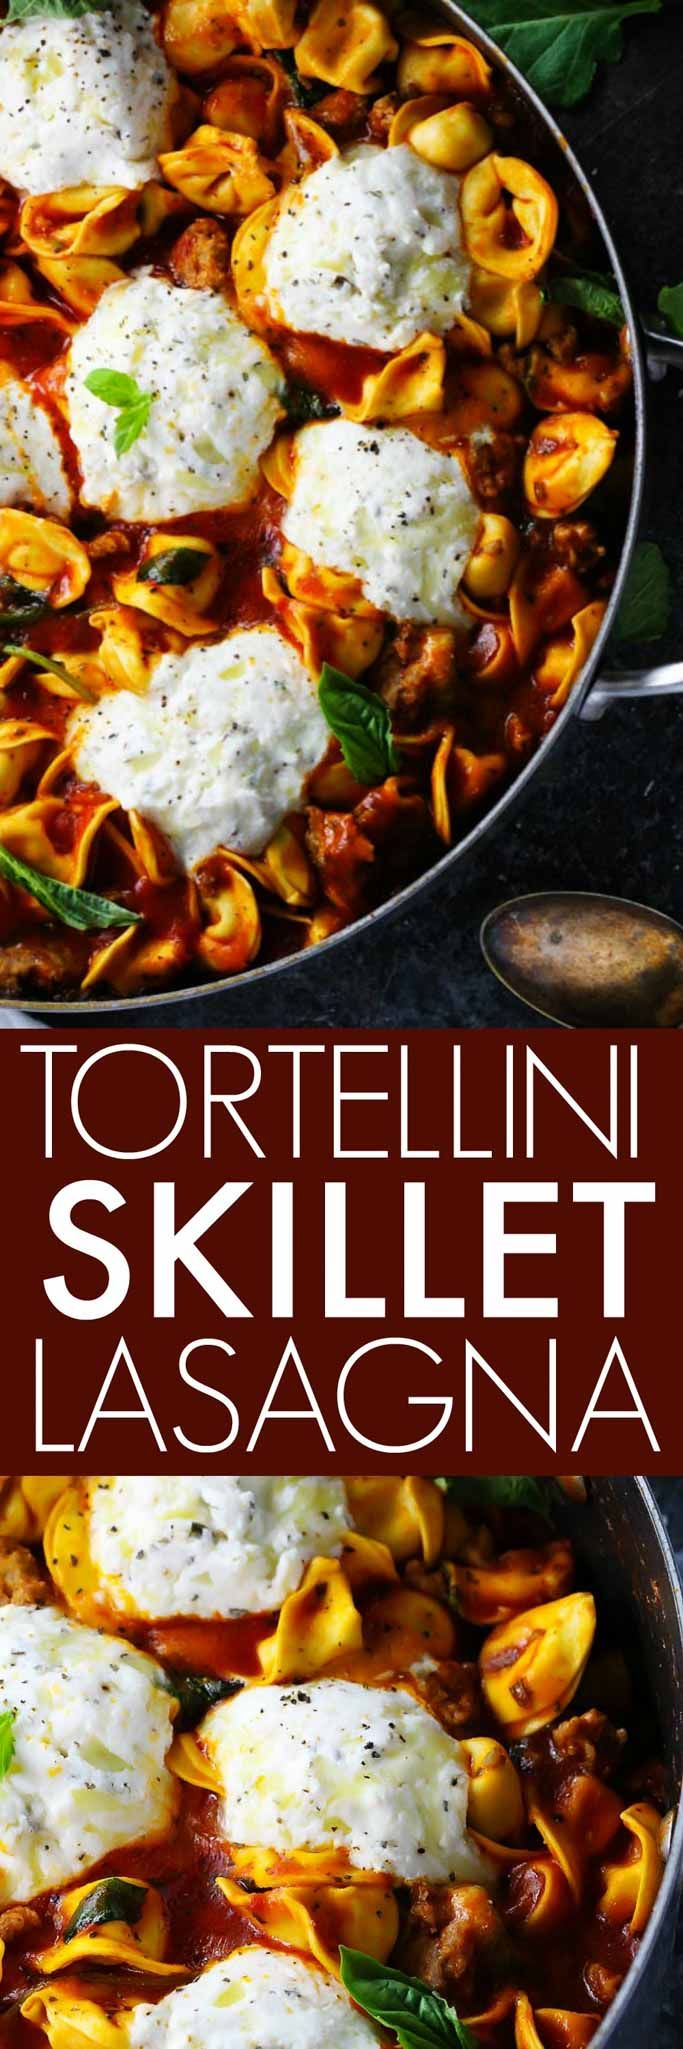 This 20-Minute Tortellini Skillet Lasagna with Sausage & Kale makes it easy to have a delicious and nutritious Italian dinner on the table in a hurry, even on a weeknight. | platingsandpairings.com